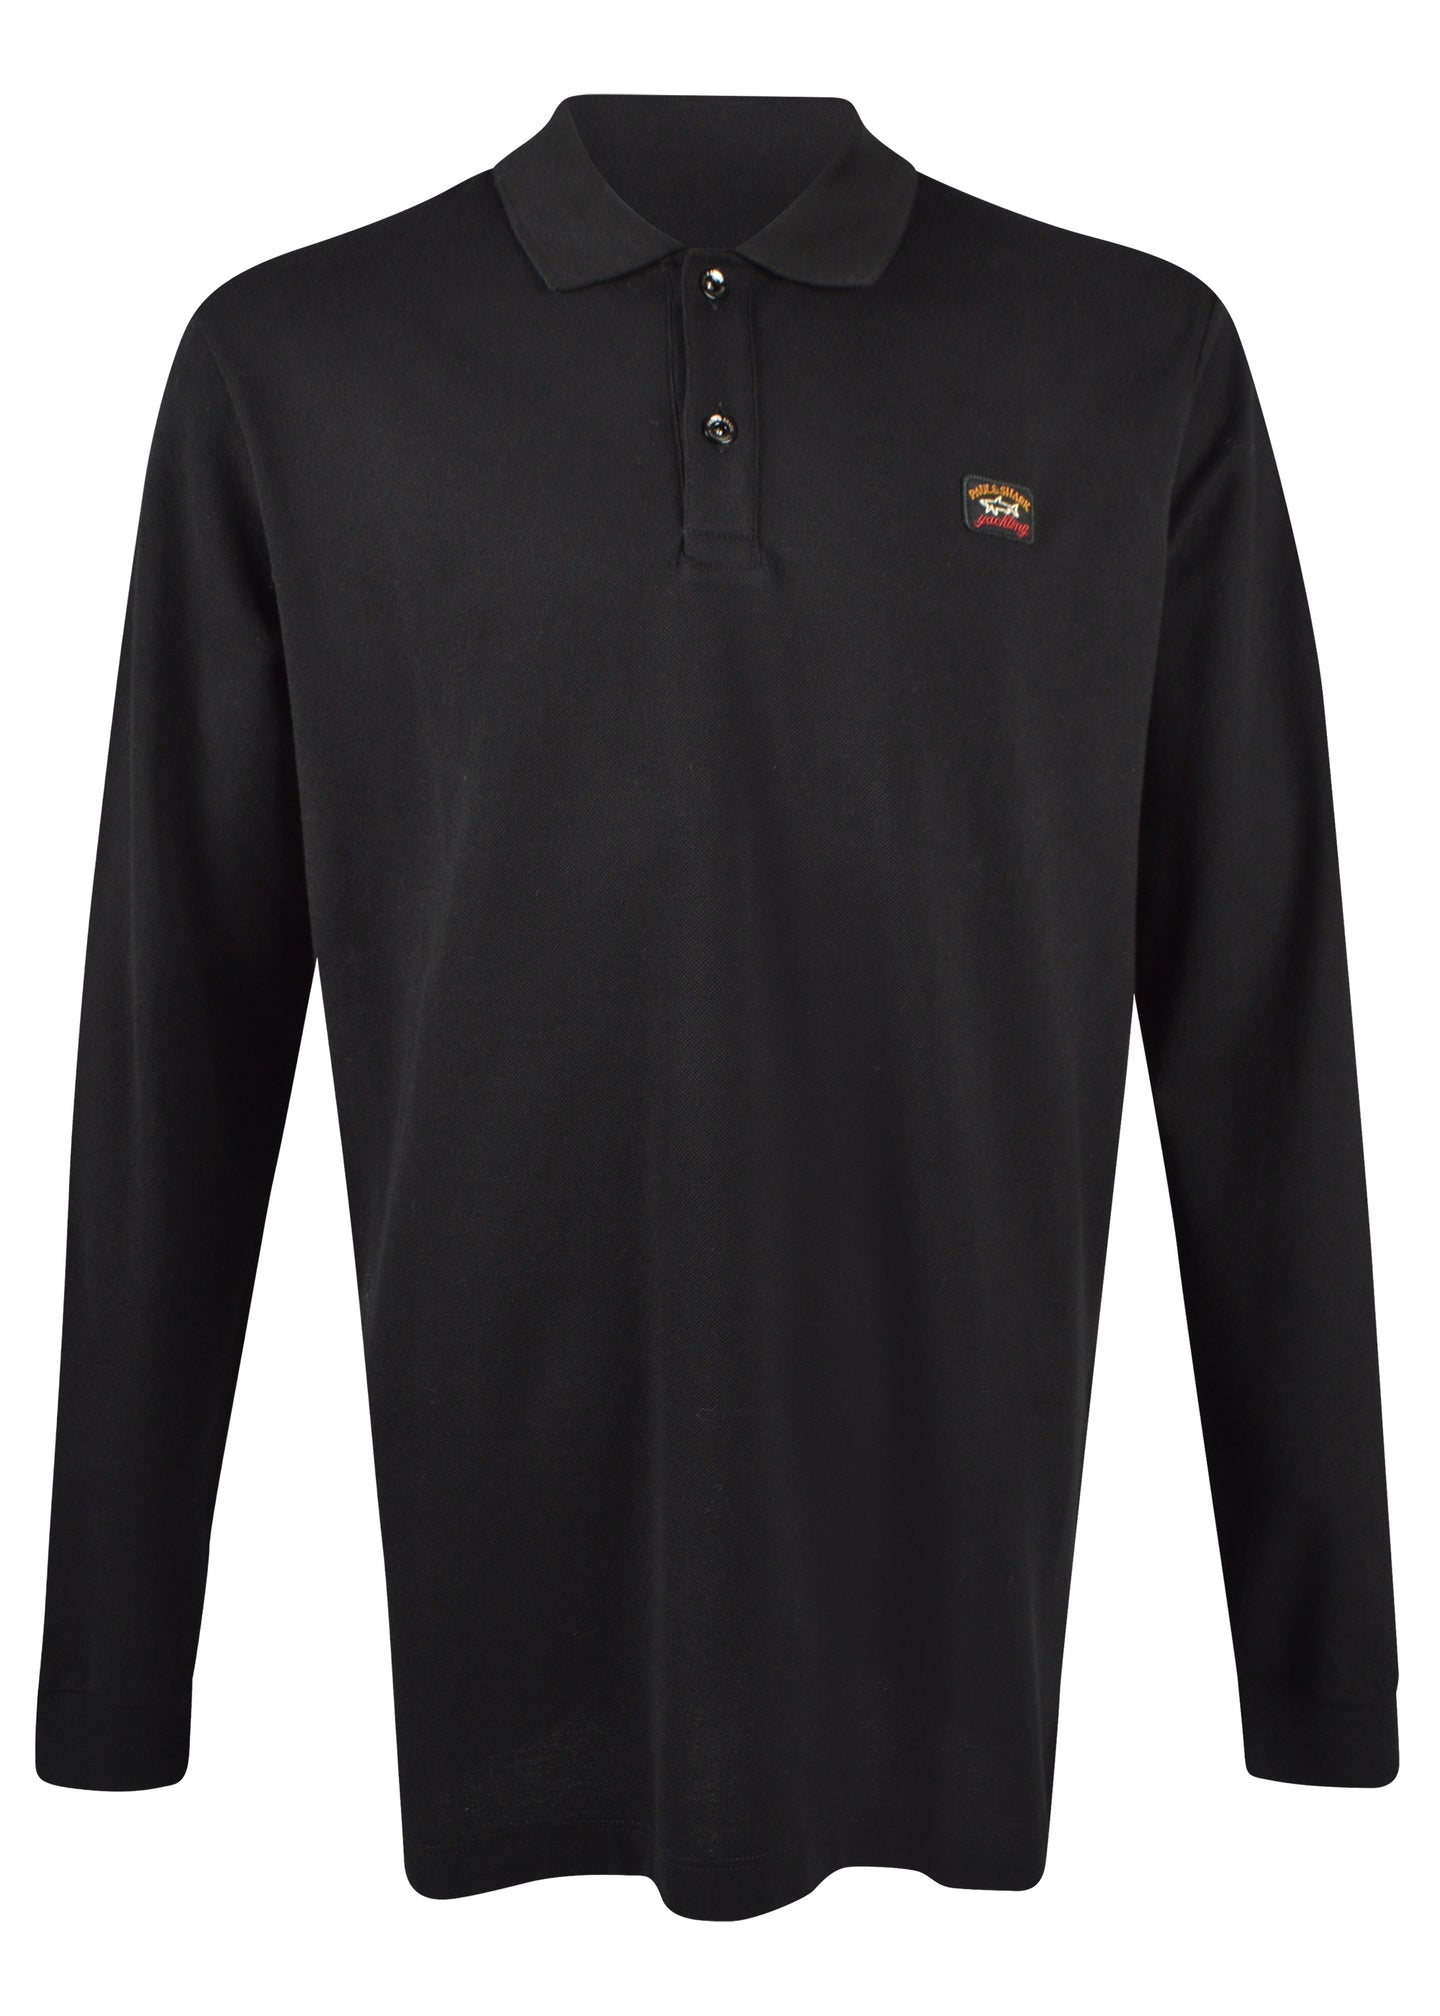 Paul & Shark - Long Sleeve Pique Polo Small Badge on Chest - 100183 - Black